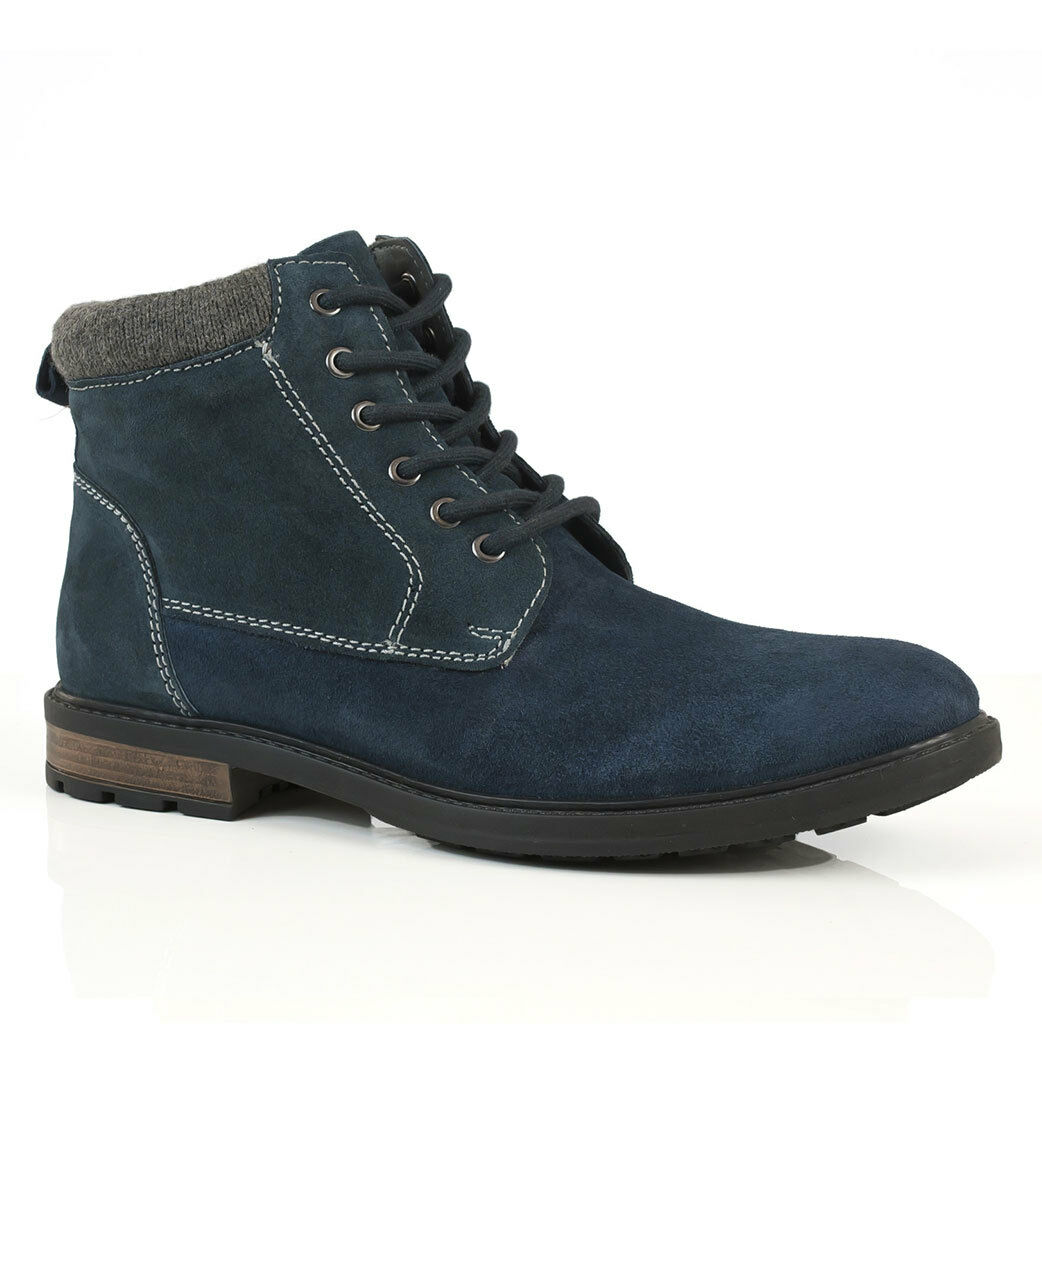 Solebay Sharrow Jeans bluee Suede Leather Lace Up Comfort Smart Casual Ankle Boot